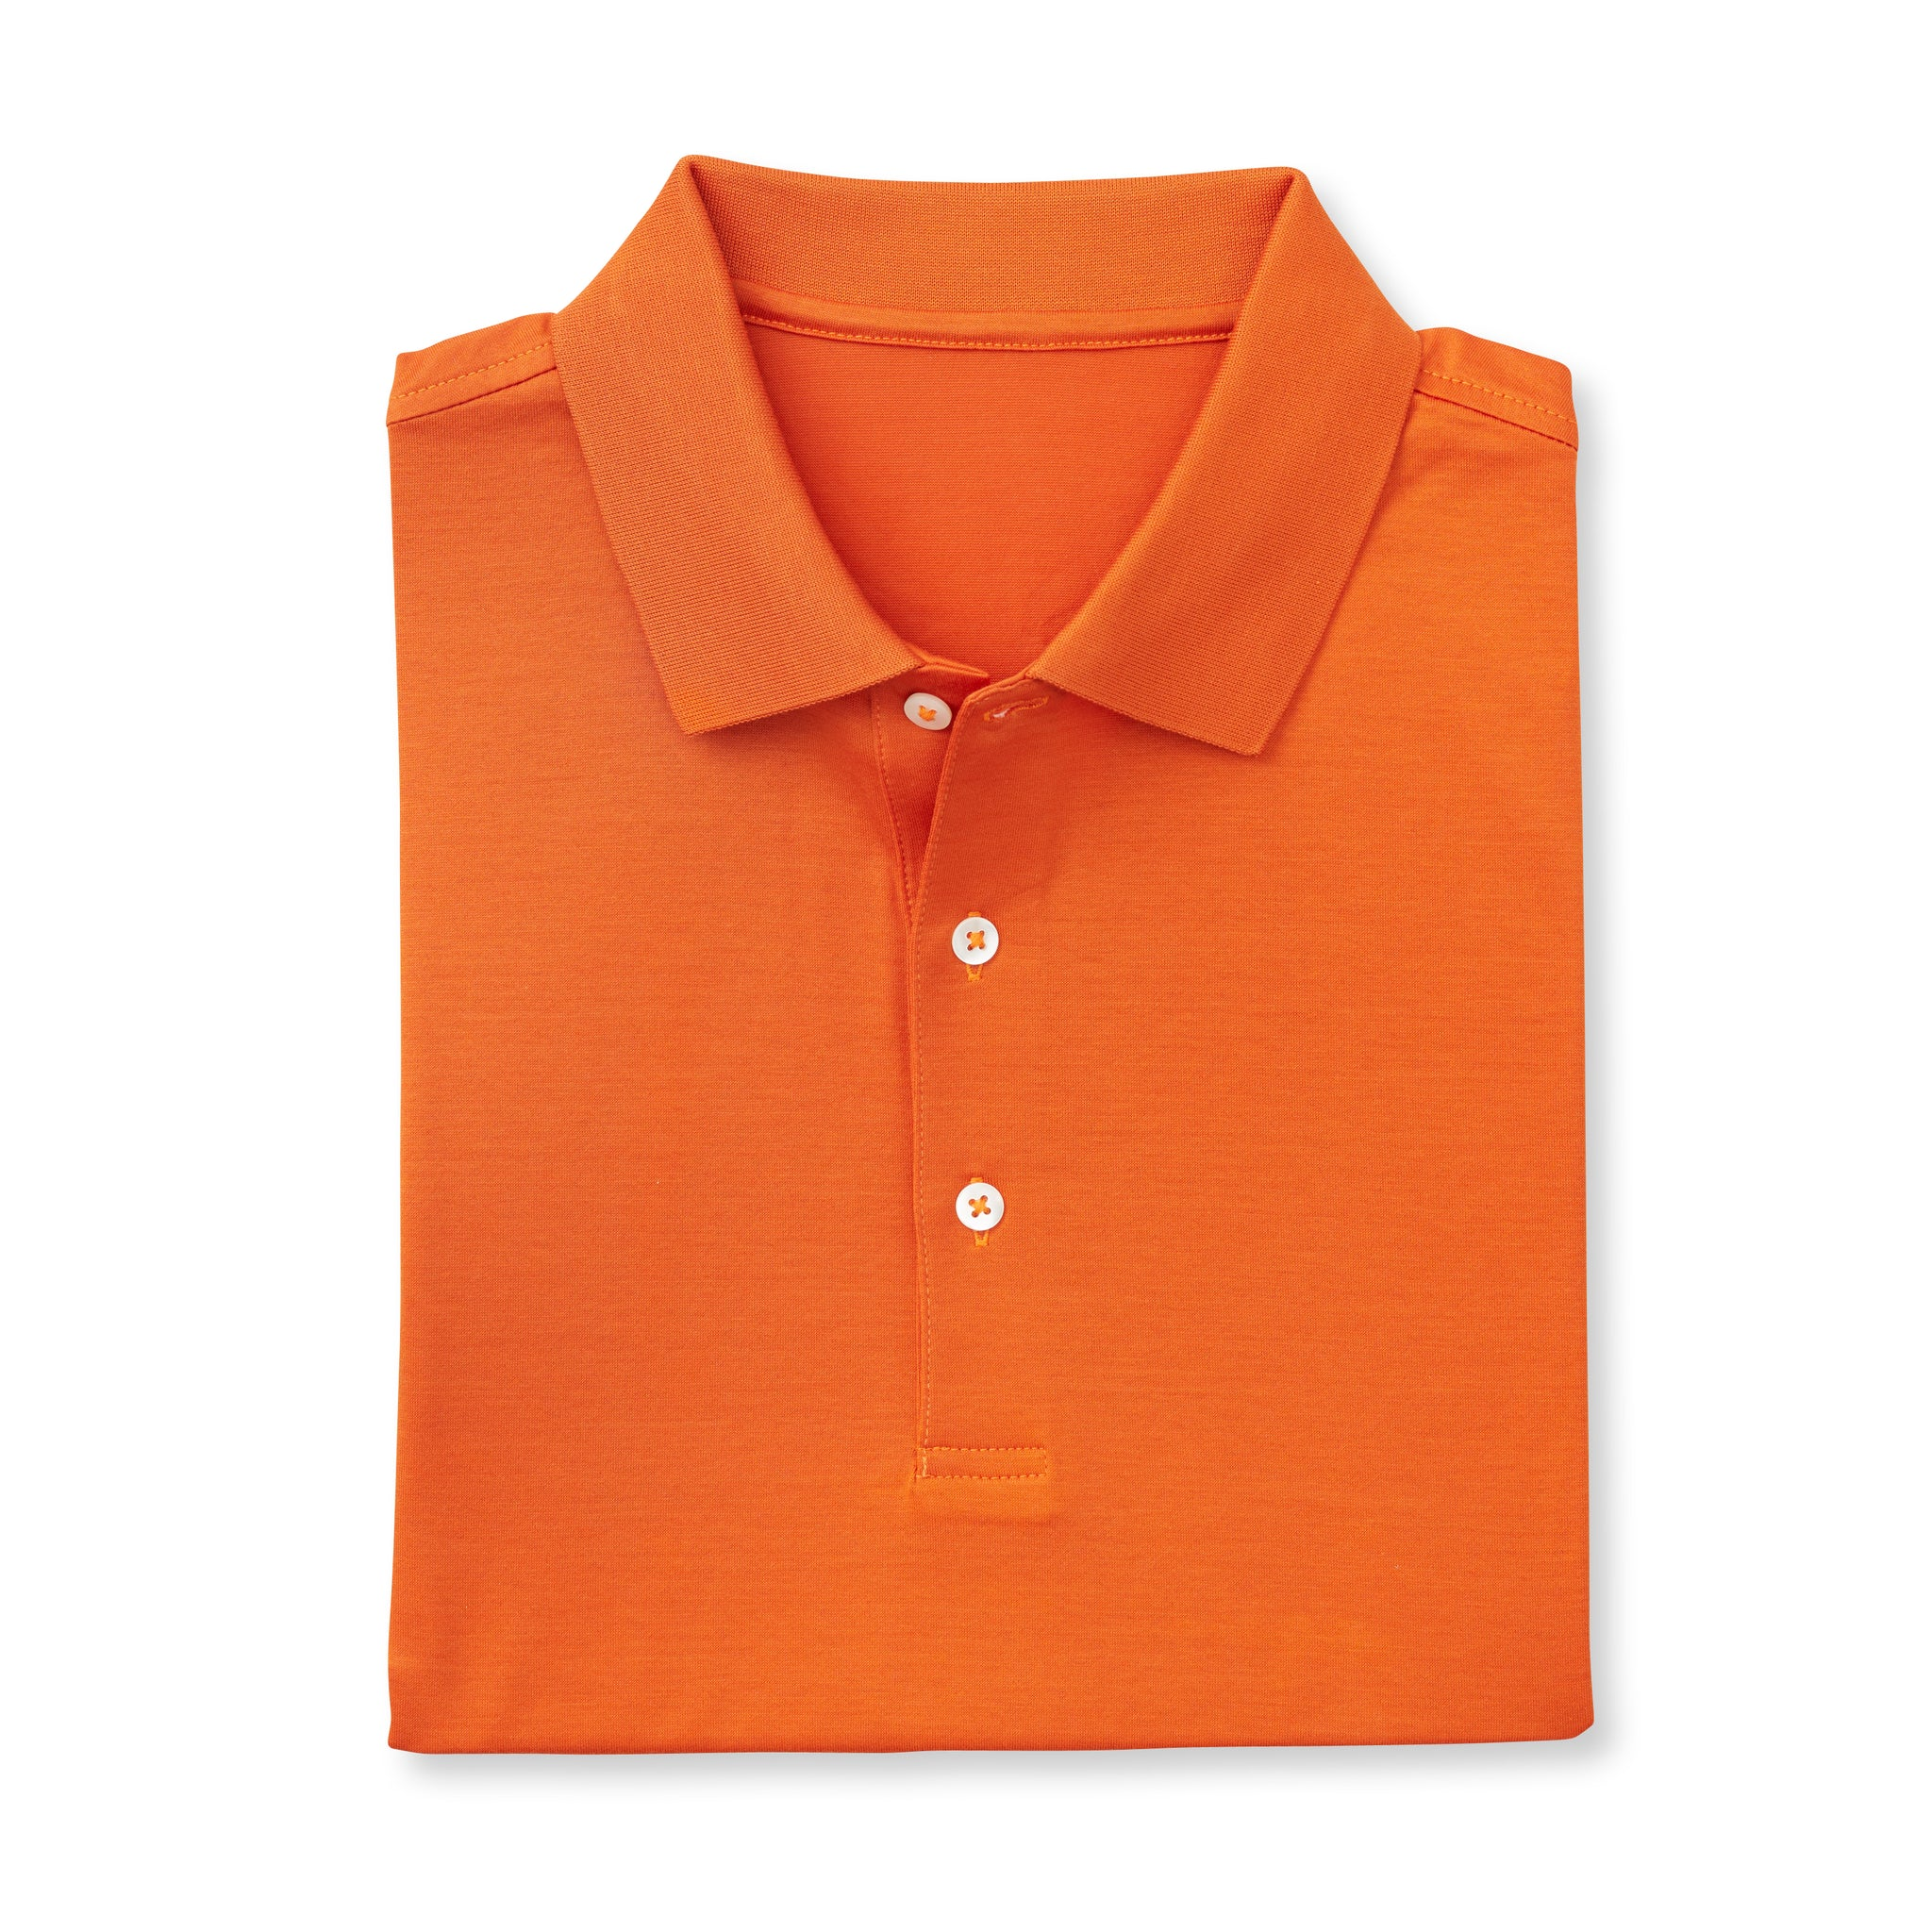 SUPIMA Short Sleeve Mercerized Polo - Burnt Orange IS62200